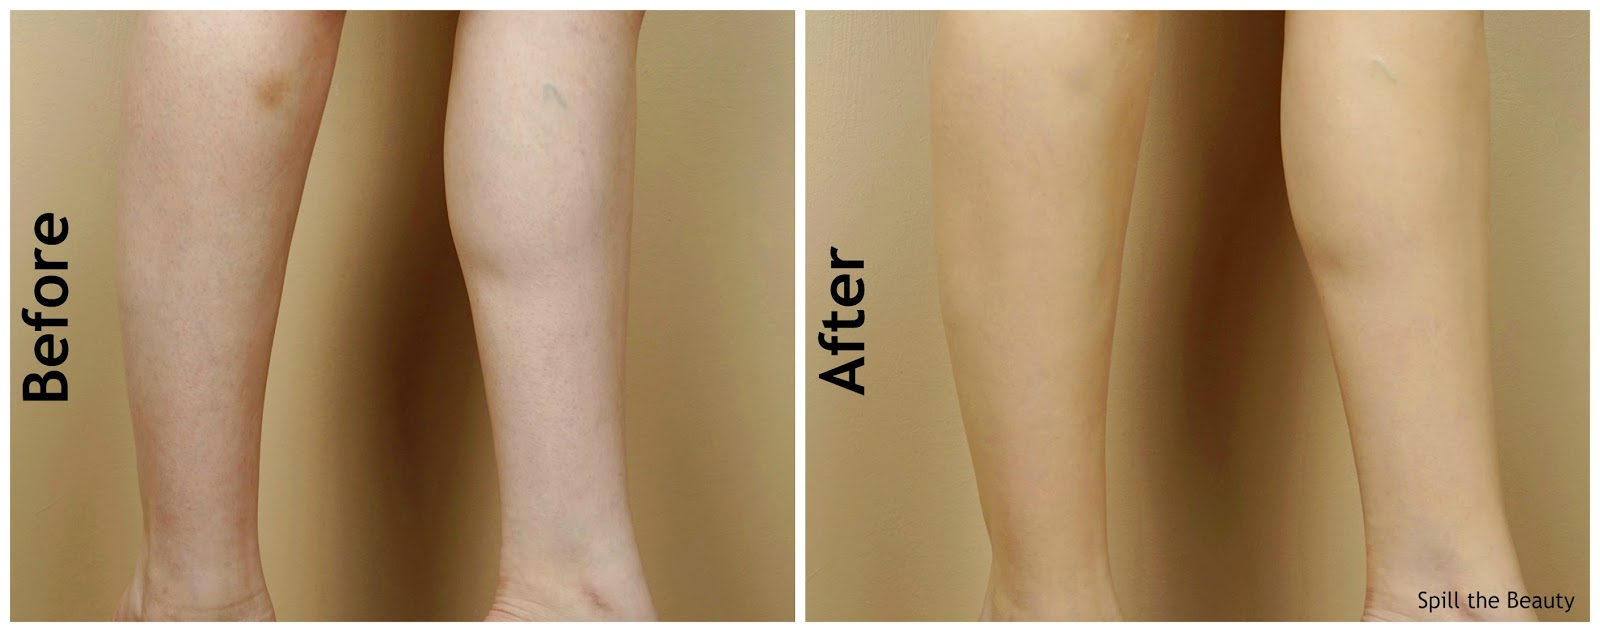 dermablend leg and body makeup buildable liquid body foundation review swatches before and after fair ivory 10n